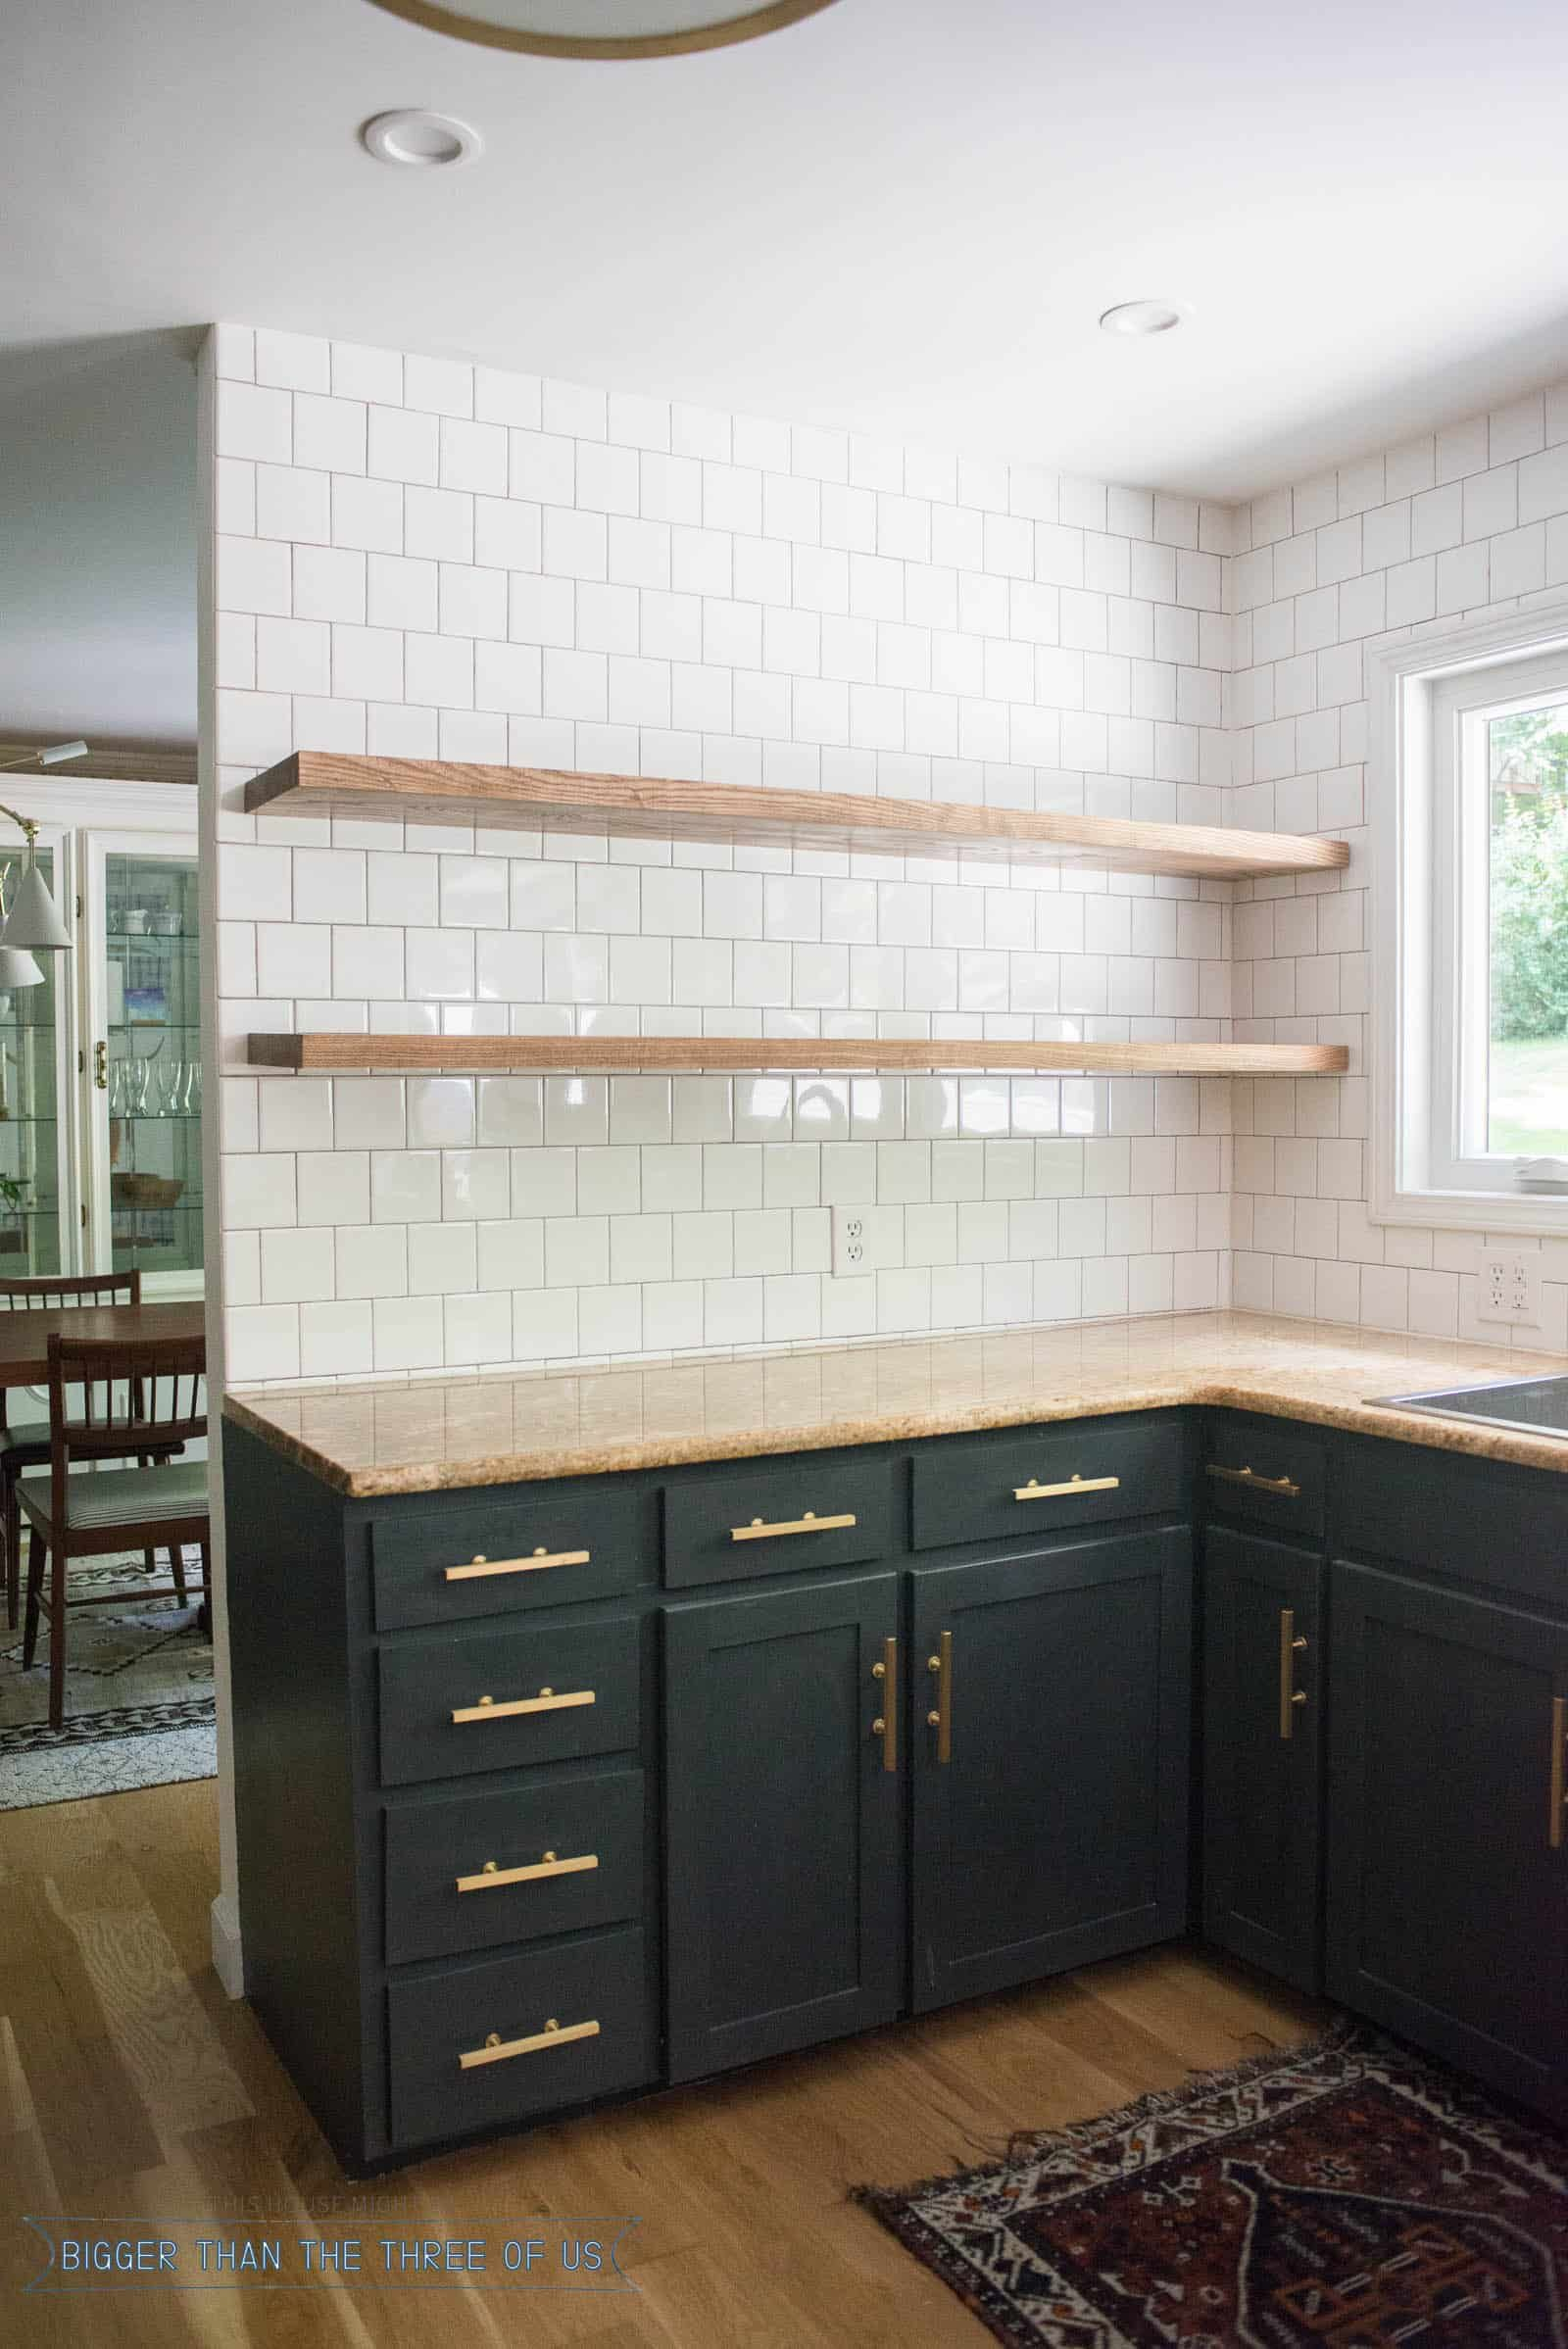 Floating Kitchen Cabinets Sink And Faucet Height Of Shelves Interior